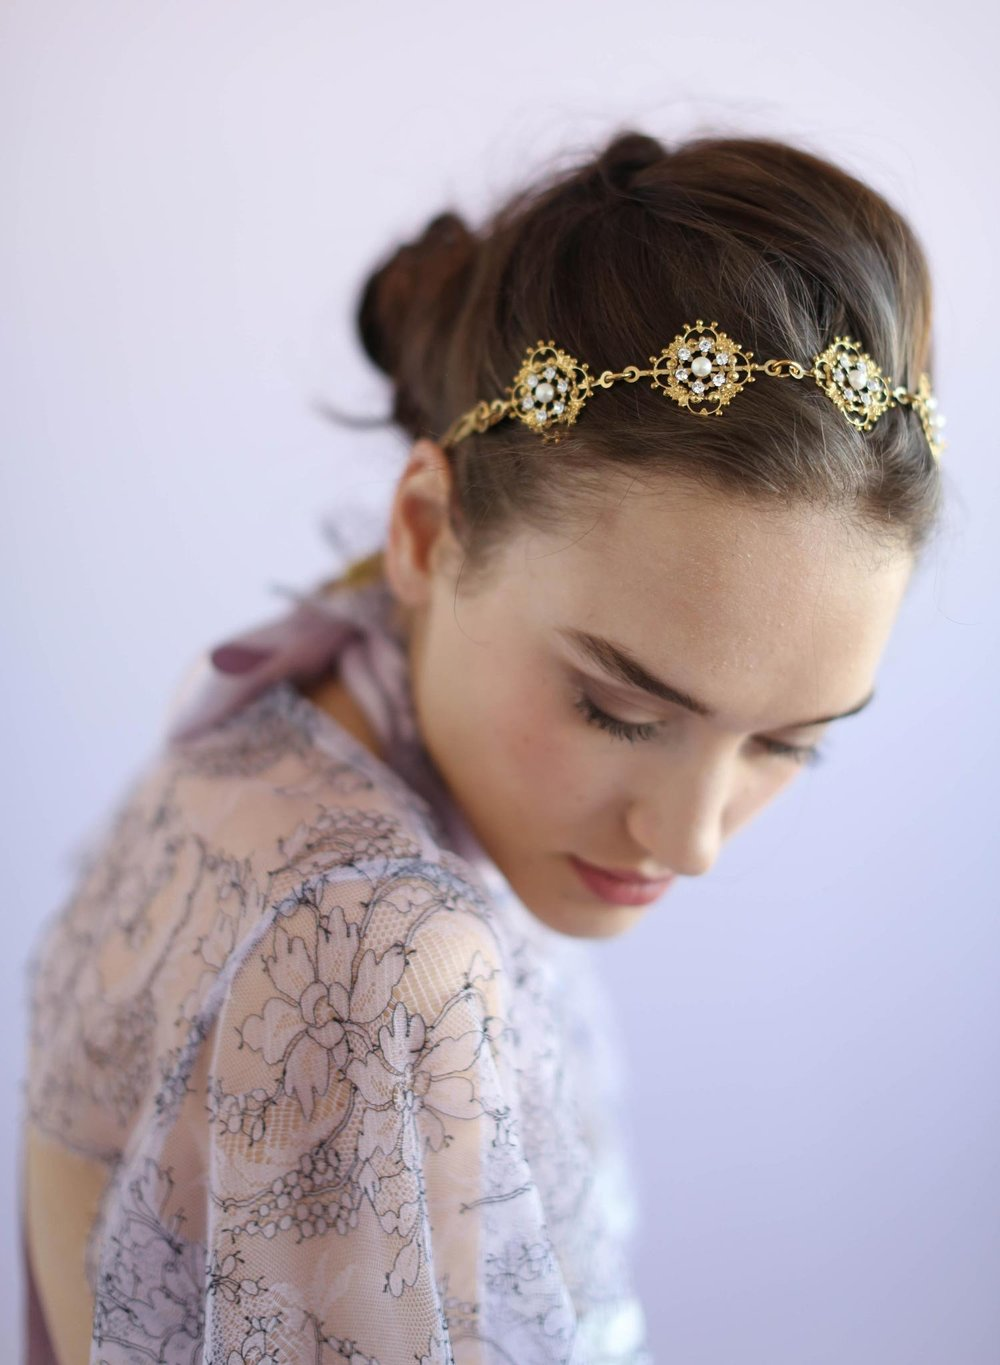 641-Victorian-inspired-decadent-headband11_MAIN.jpg